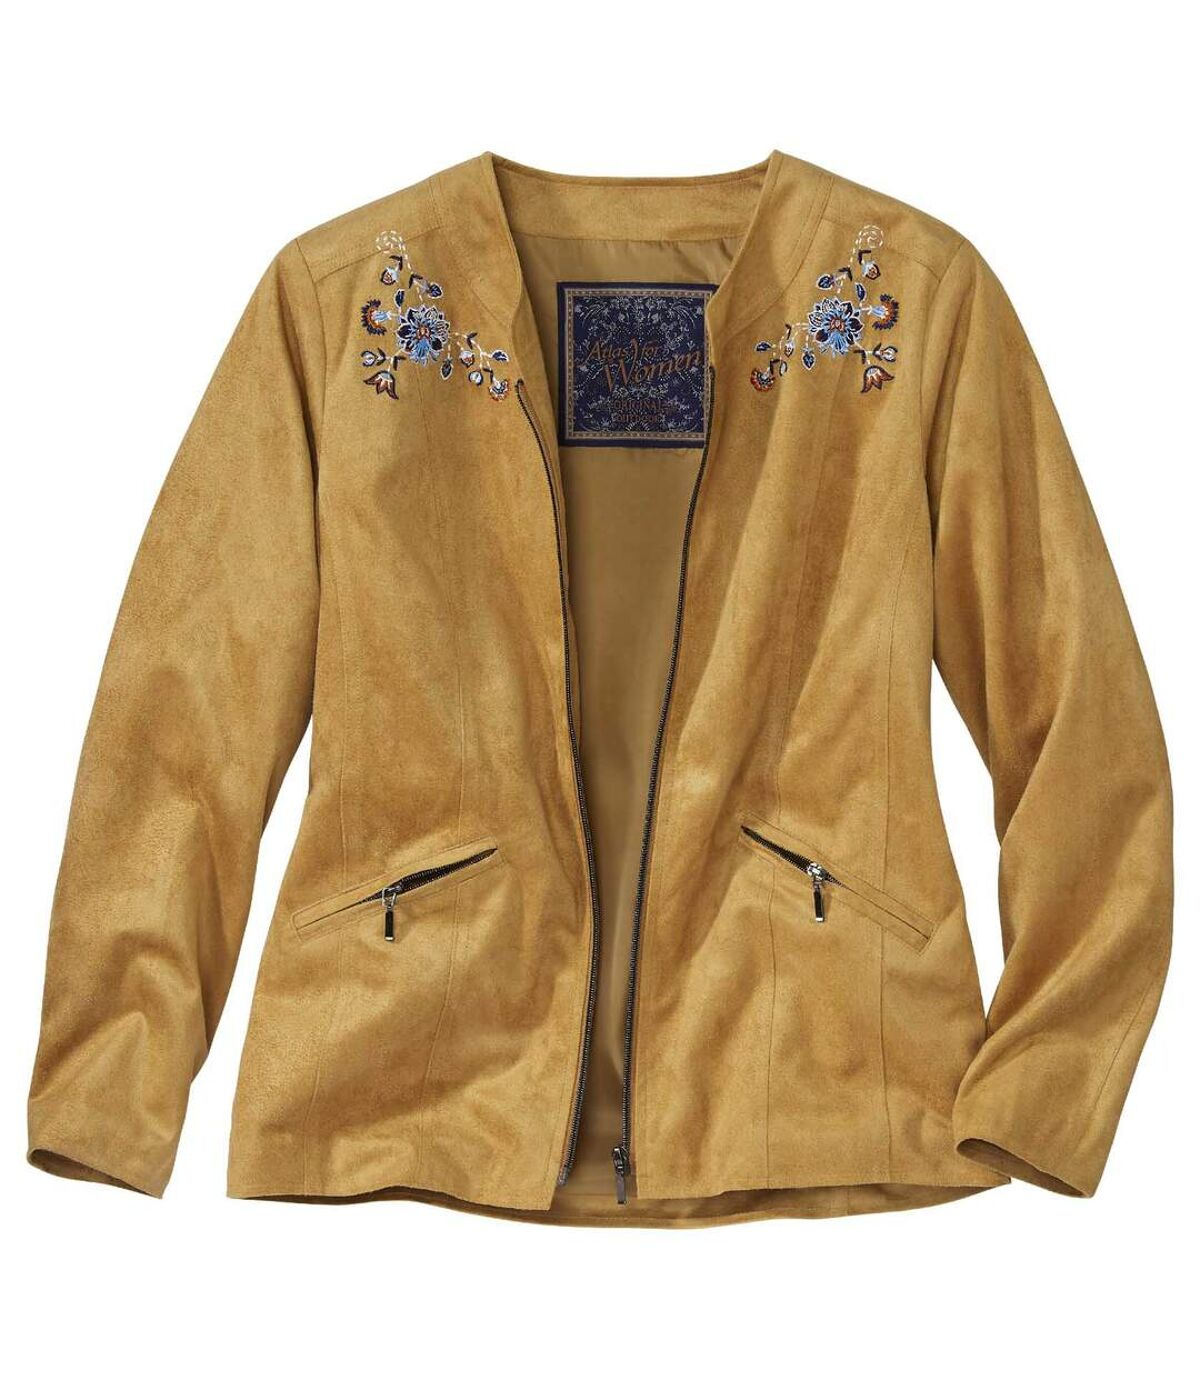 Women's Embroidered Faux Suede Jacket - Camel Atlas For Men